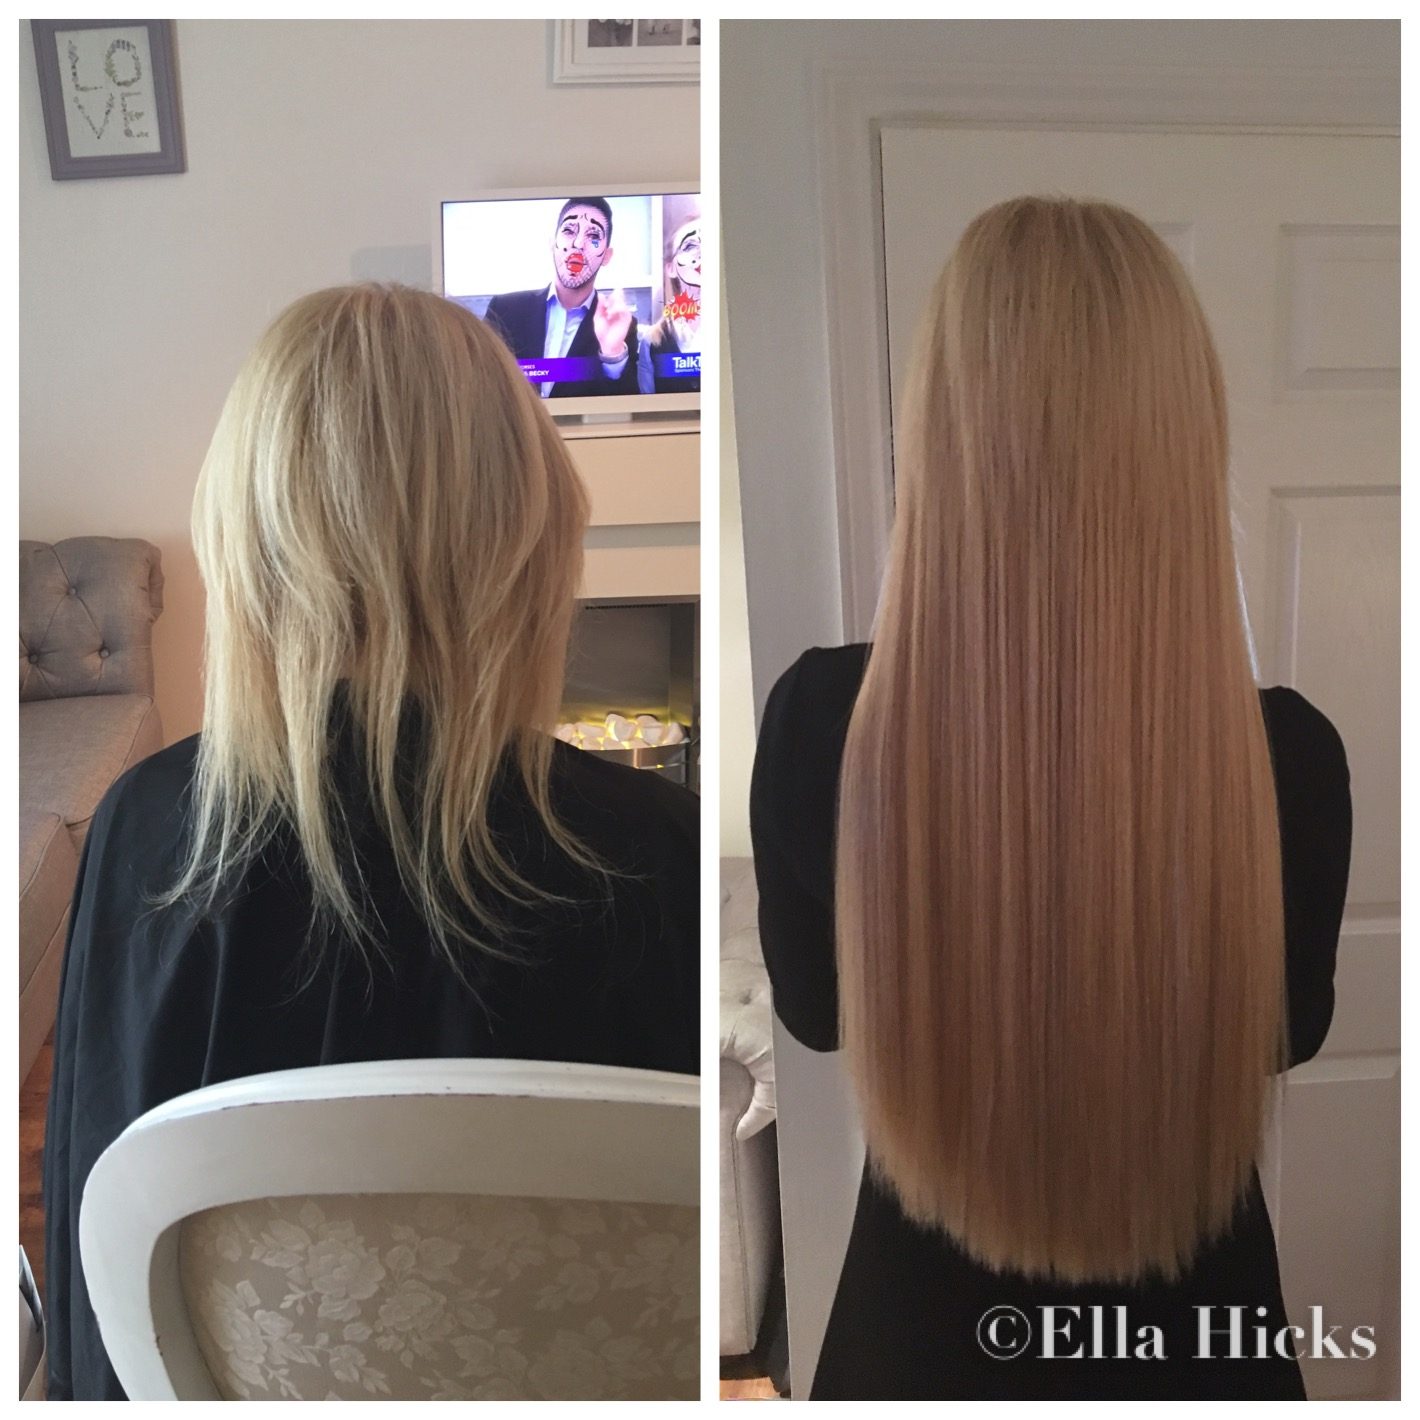 Ella Hicks Hair Extensions Portfolio